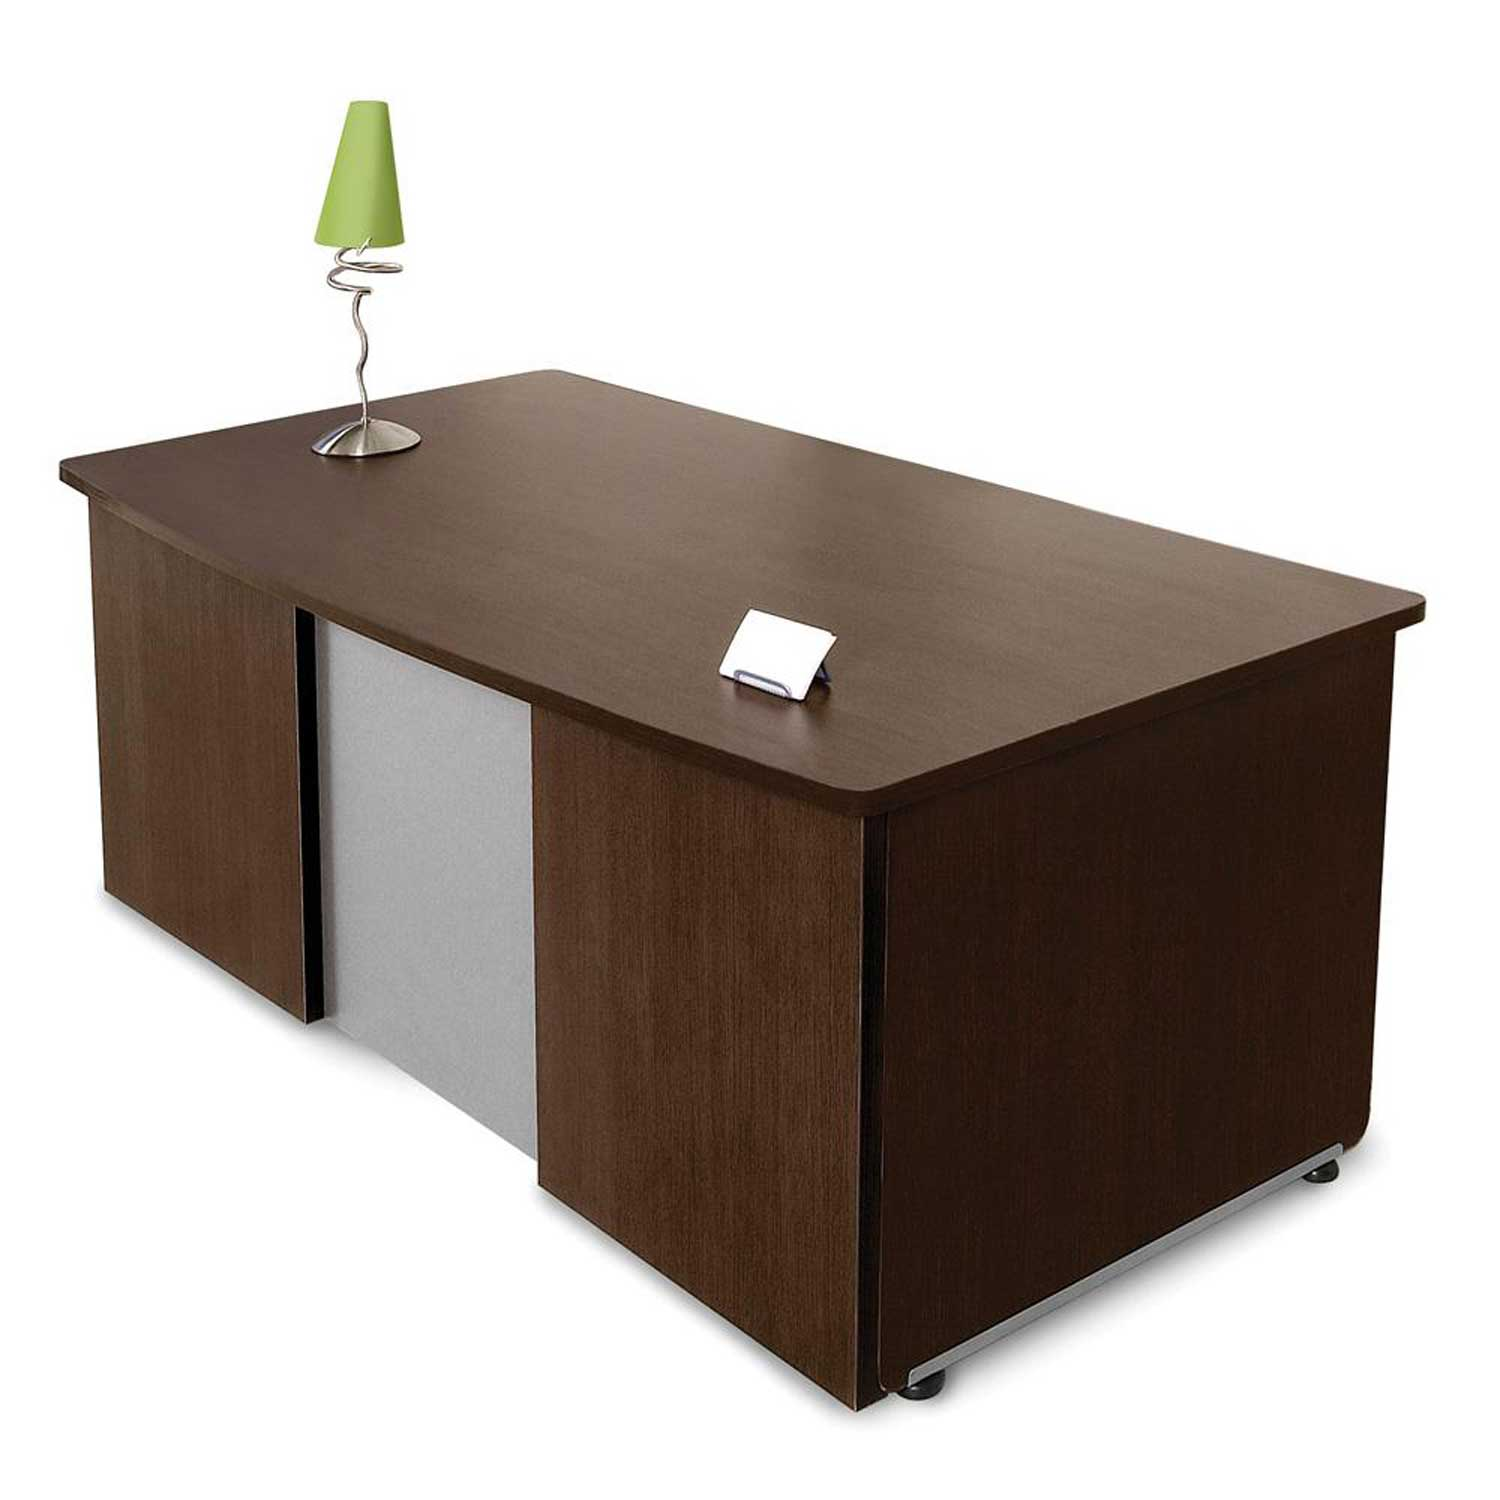 Discount office furniture office furniture part 2 - Office furnitur ...